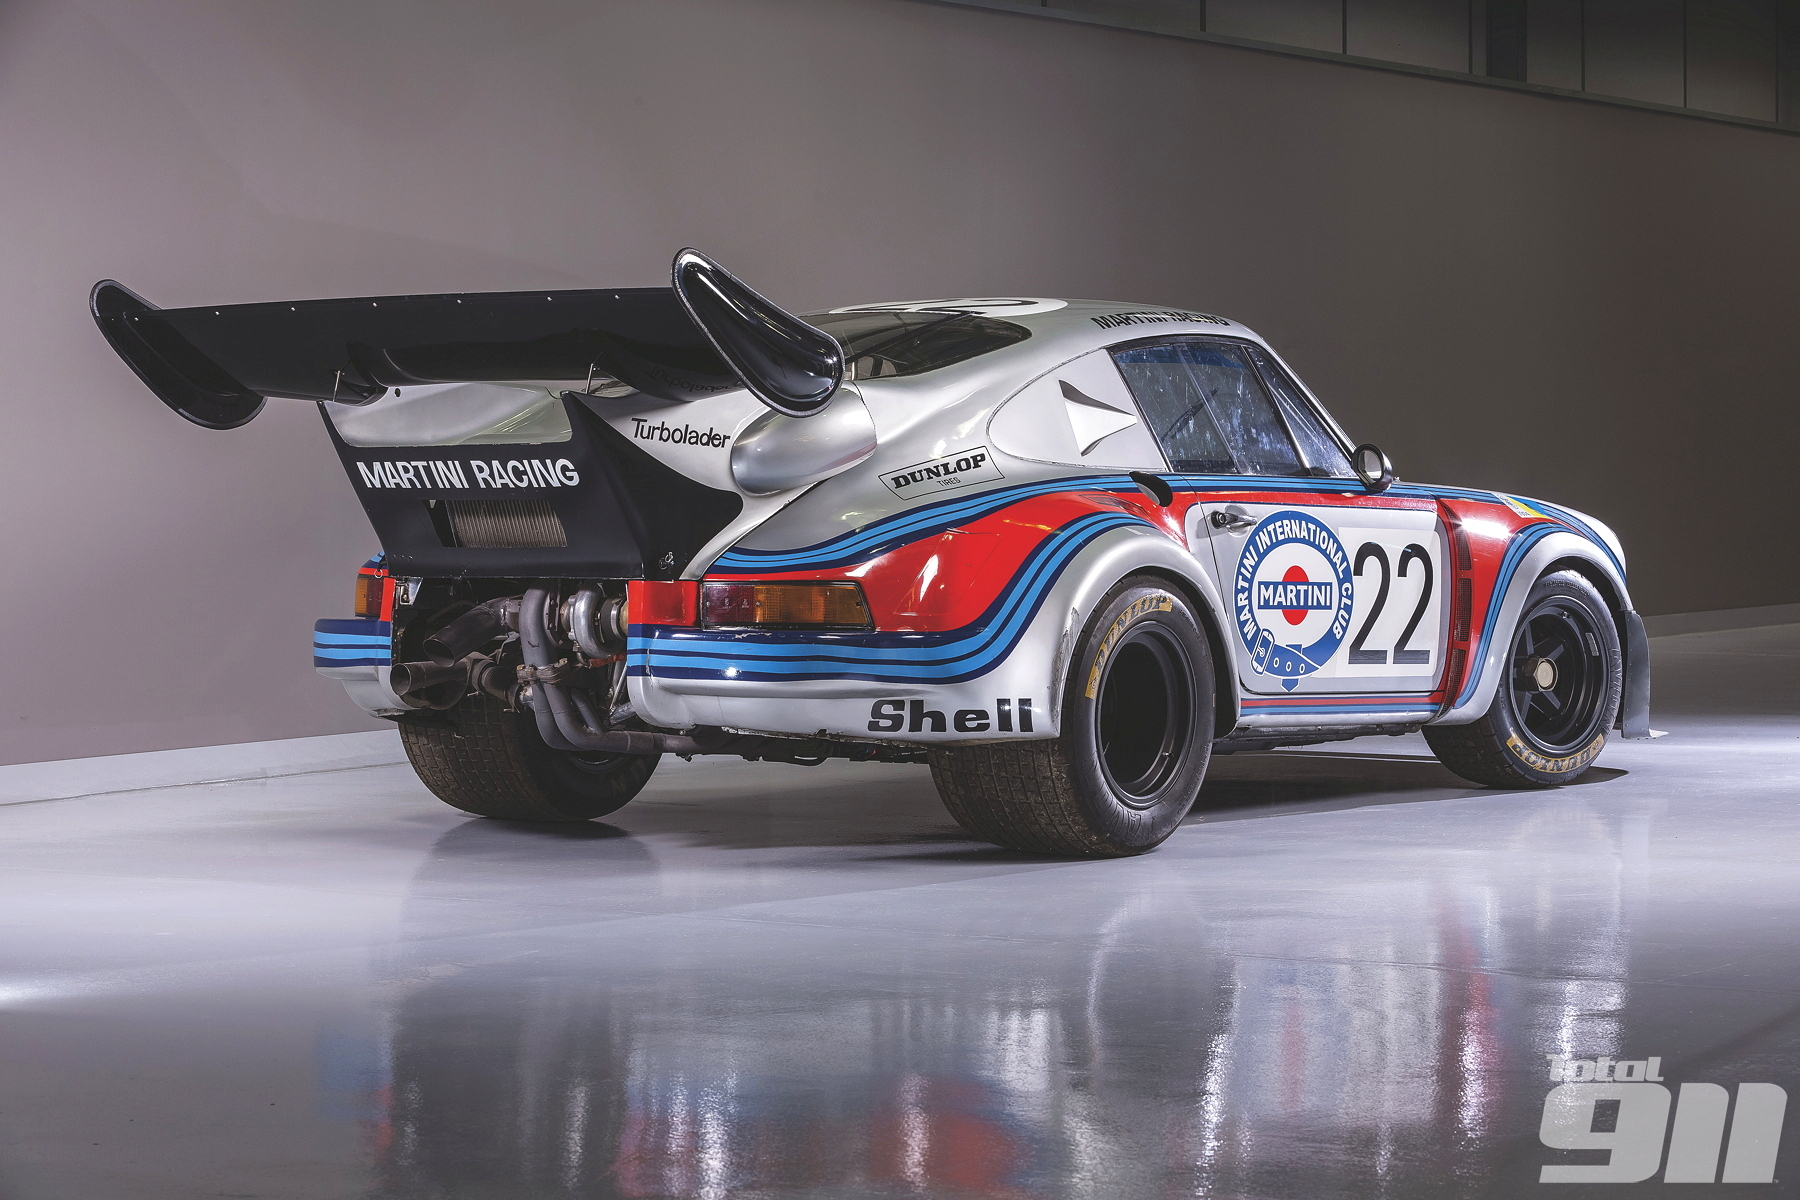 1974 911 Carrera RSR Turbo 2.1